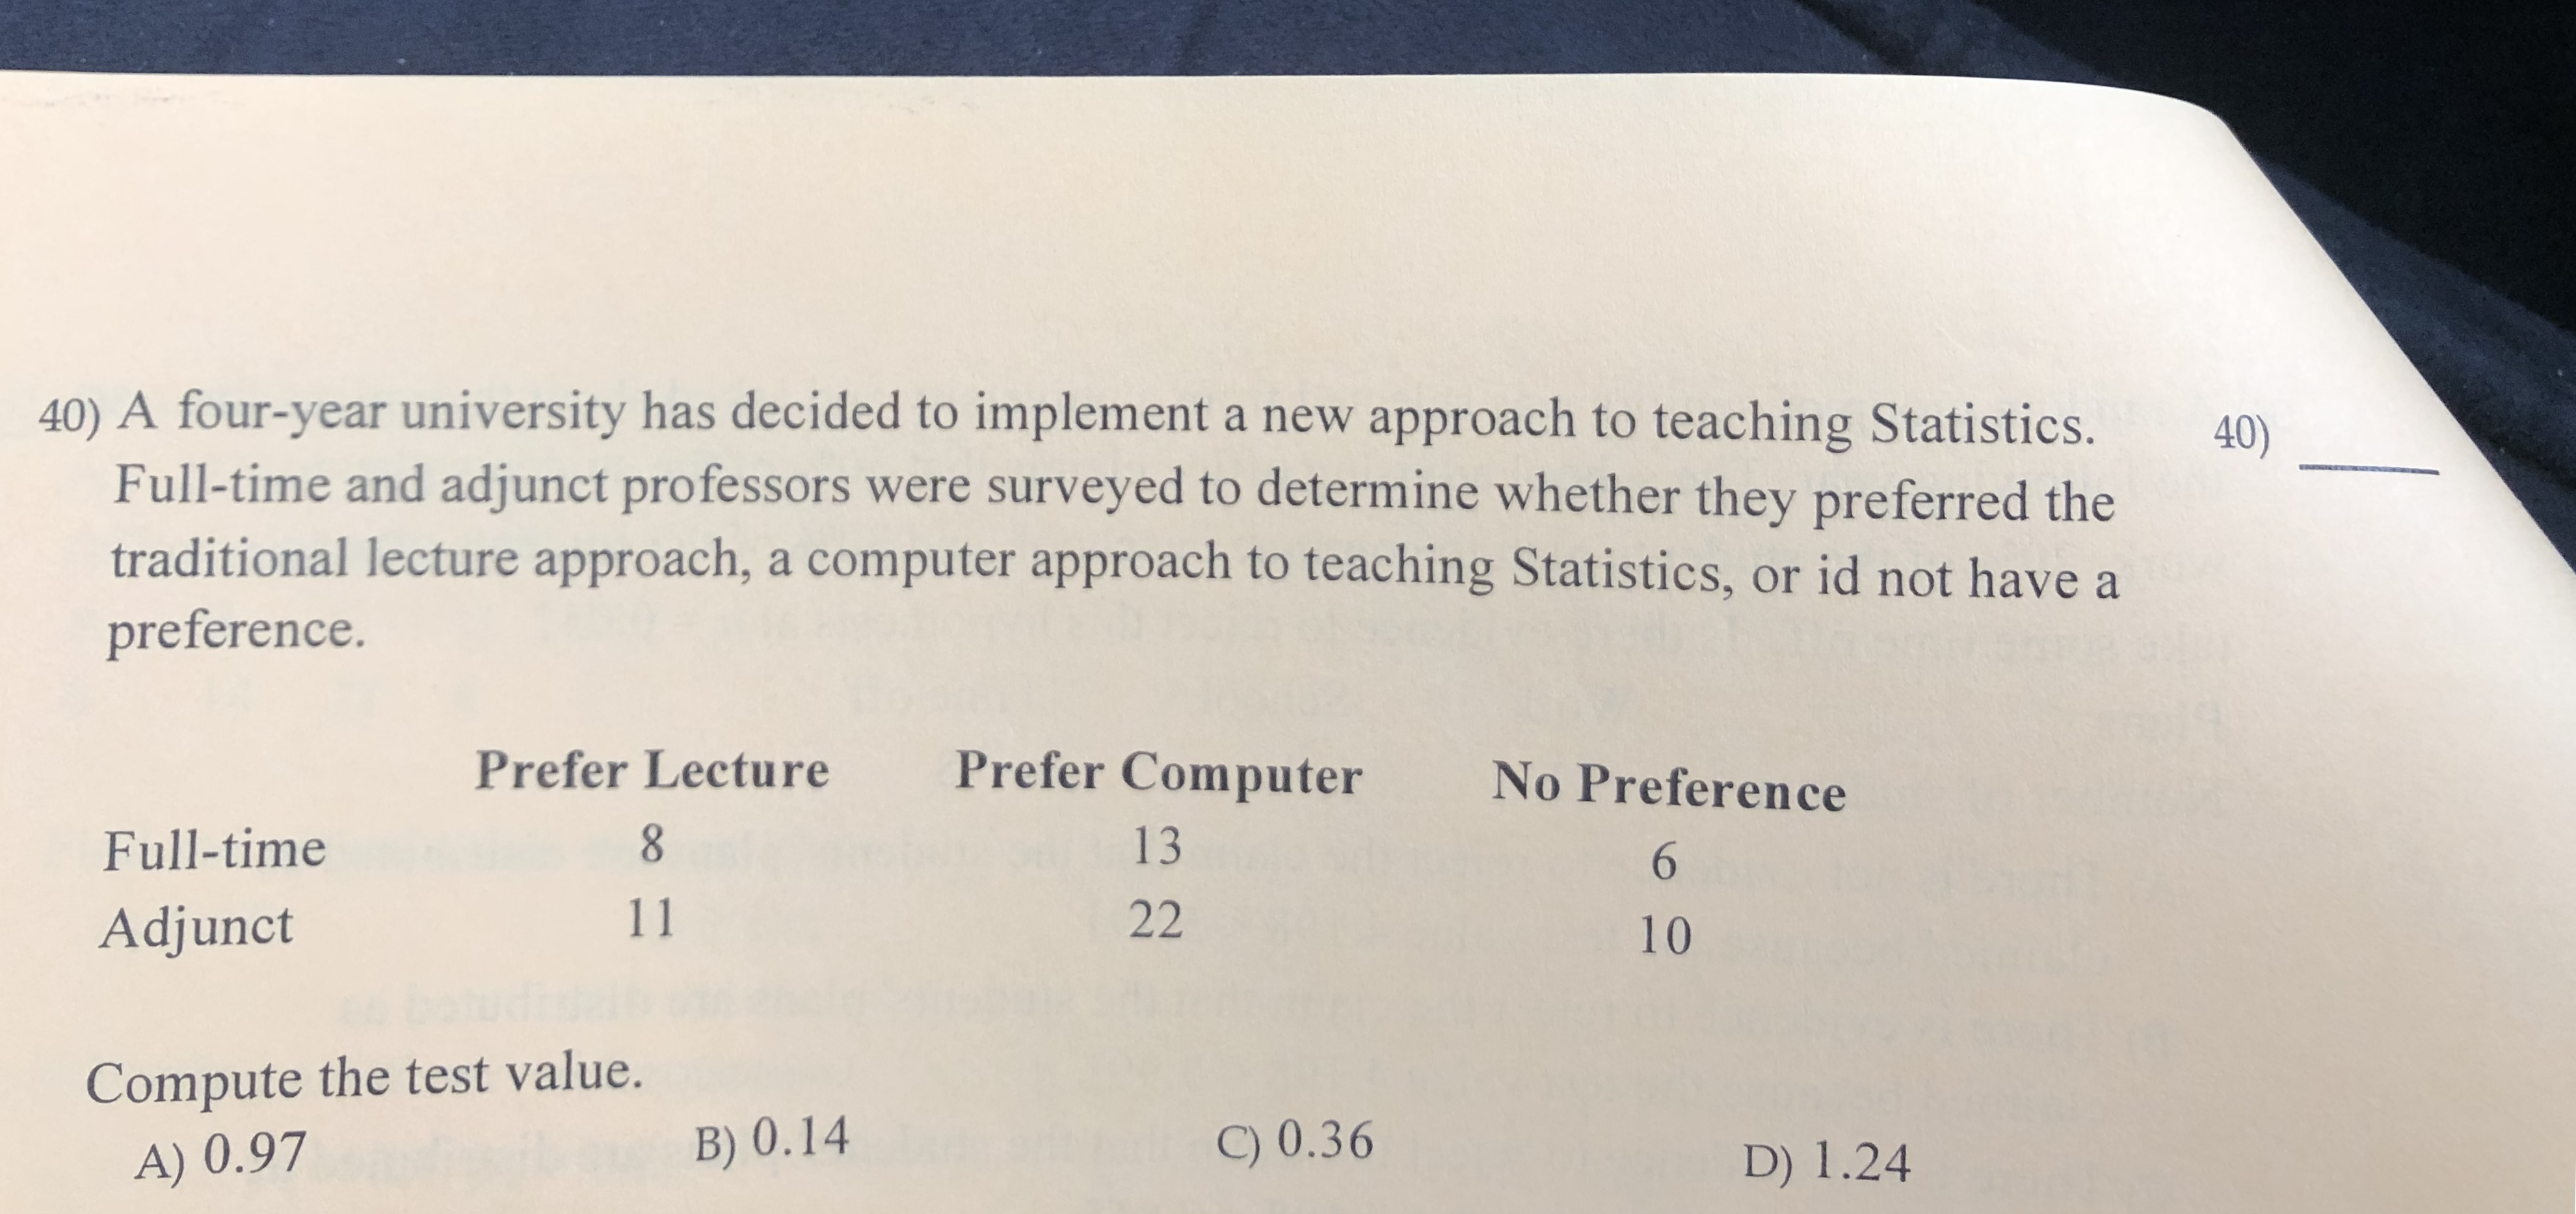 40) A four-year university has decided to implement a new approach to teaching Statistics. Full-time and adjunct professors were surveyed to determine whether they preferred the traditional lecture approach, a computer approach to teaching Statistics, or id not have a 40) preference. Prefer Computer Prefer Lecture No Preference 13 Full-time 6 11 22 Adjunct 10 Compute the test value. C) 0.36 B) 0.14 D) 1.24 A) 0.97